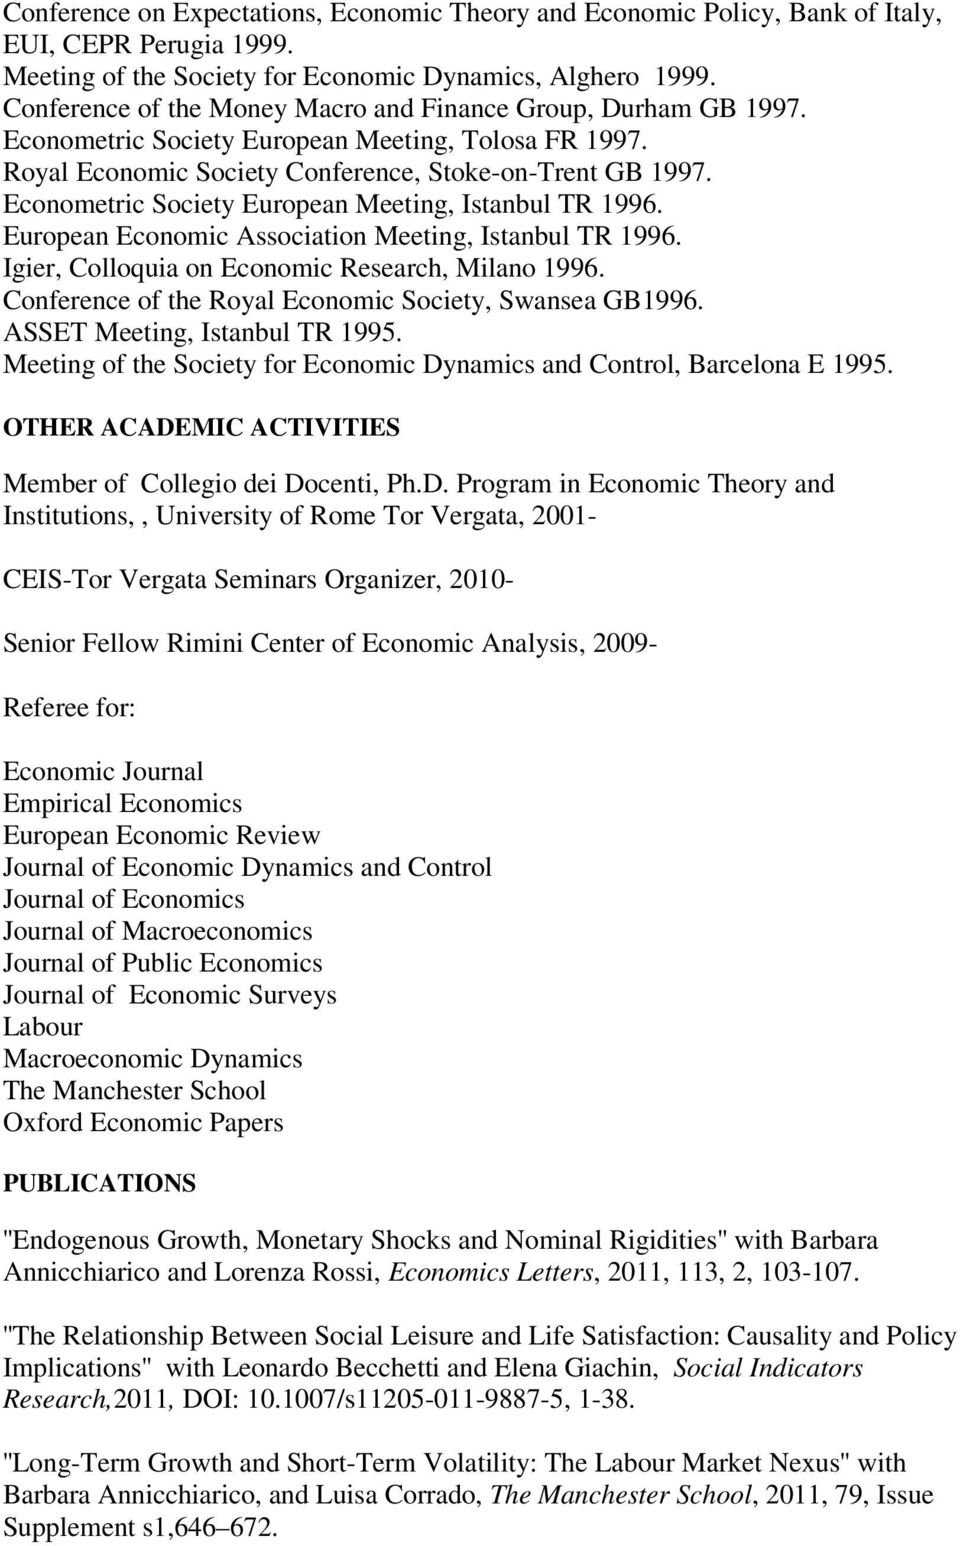 Econometric Society European Meeting, Istanbul TR 1996. European Economic Association Meeting, Istanbul TR 1996. Igier, Colloquia on Economic Research, Milano 1996.